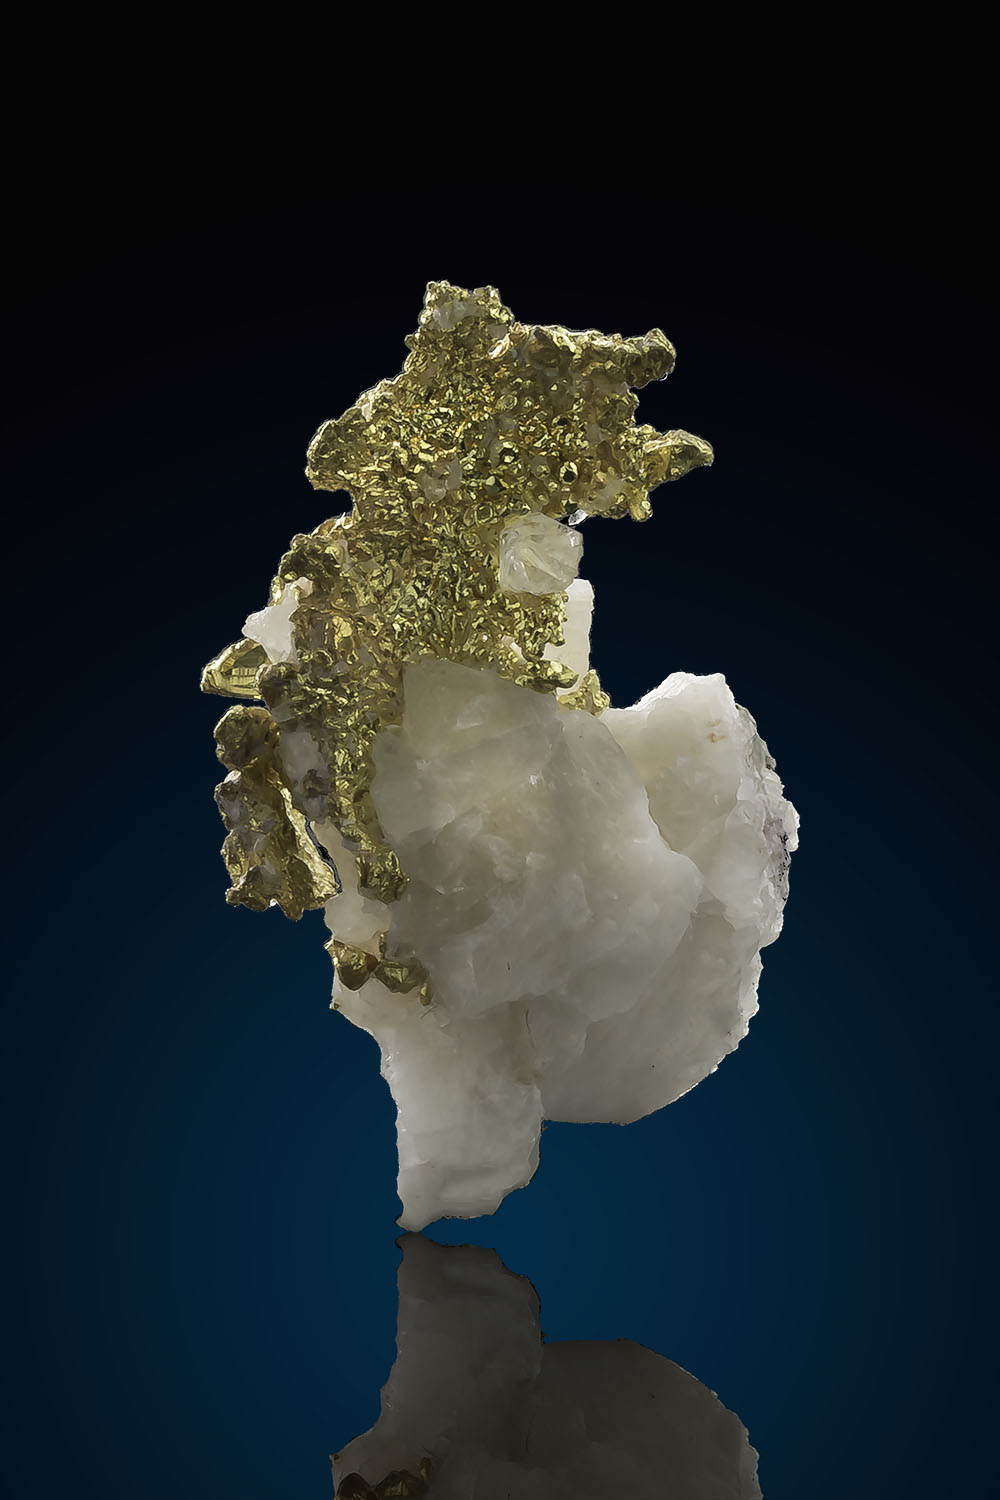 Faceted Gold Crystals on Quartz - Eagles Nest Gold Mine